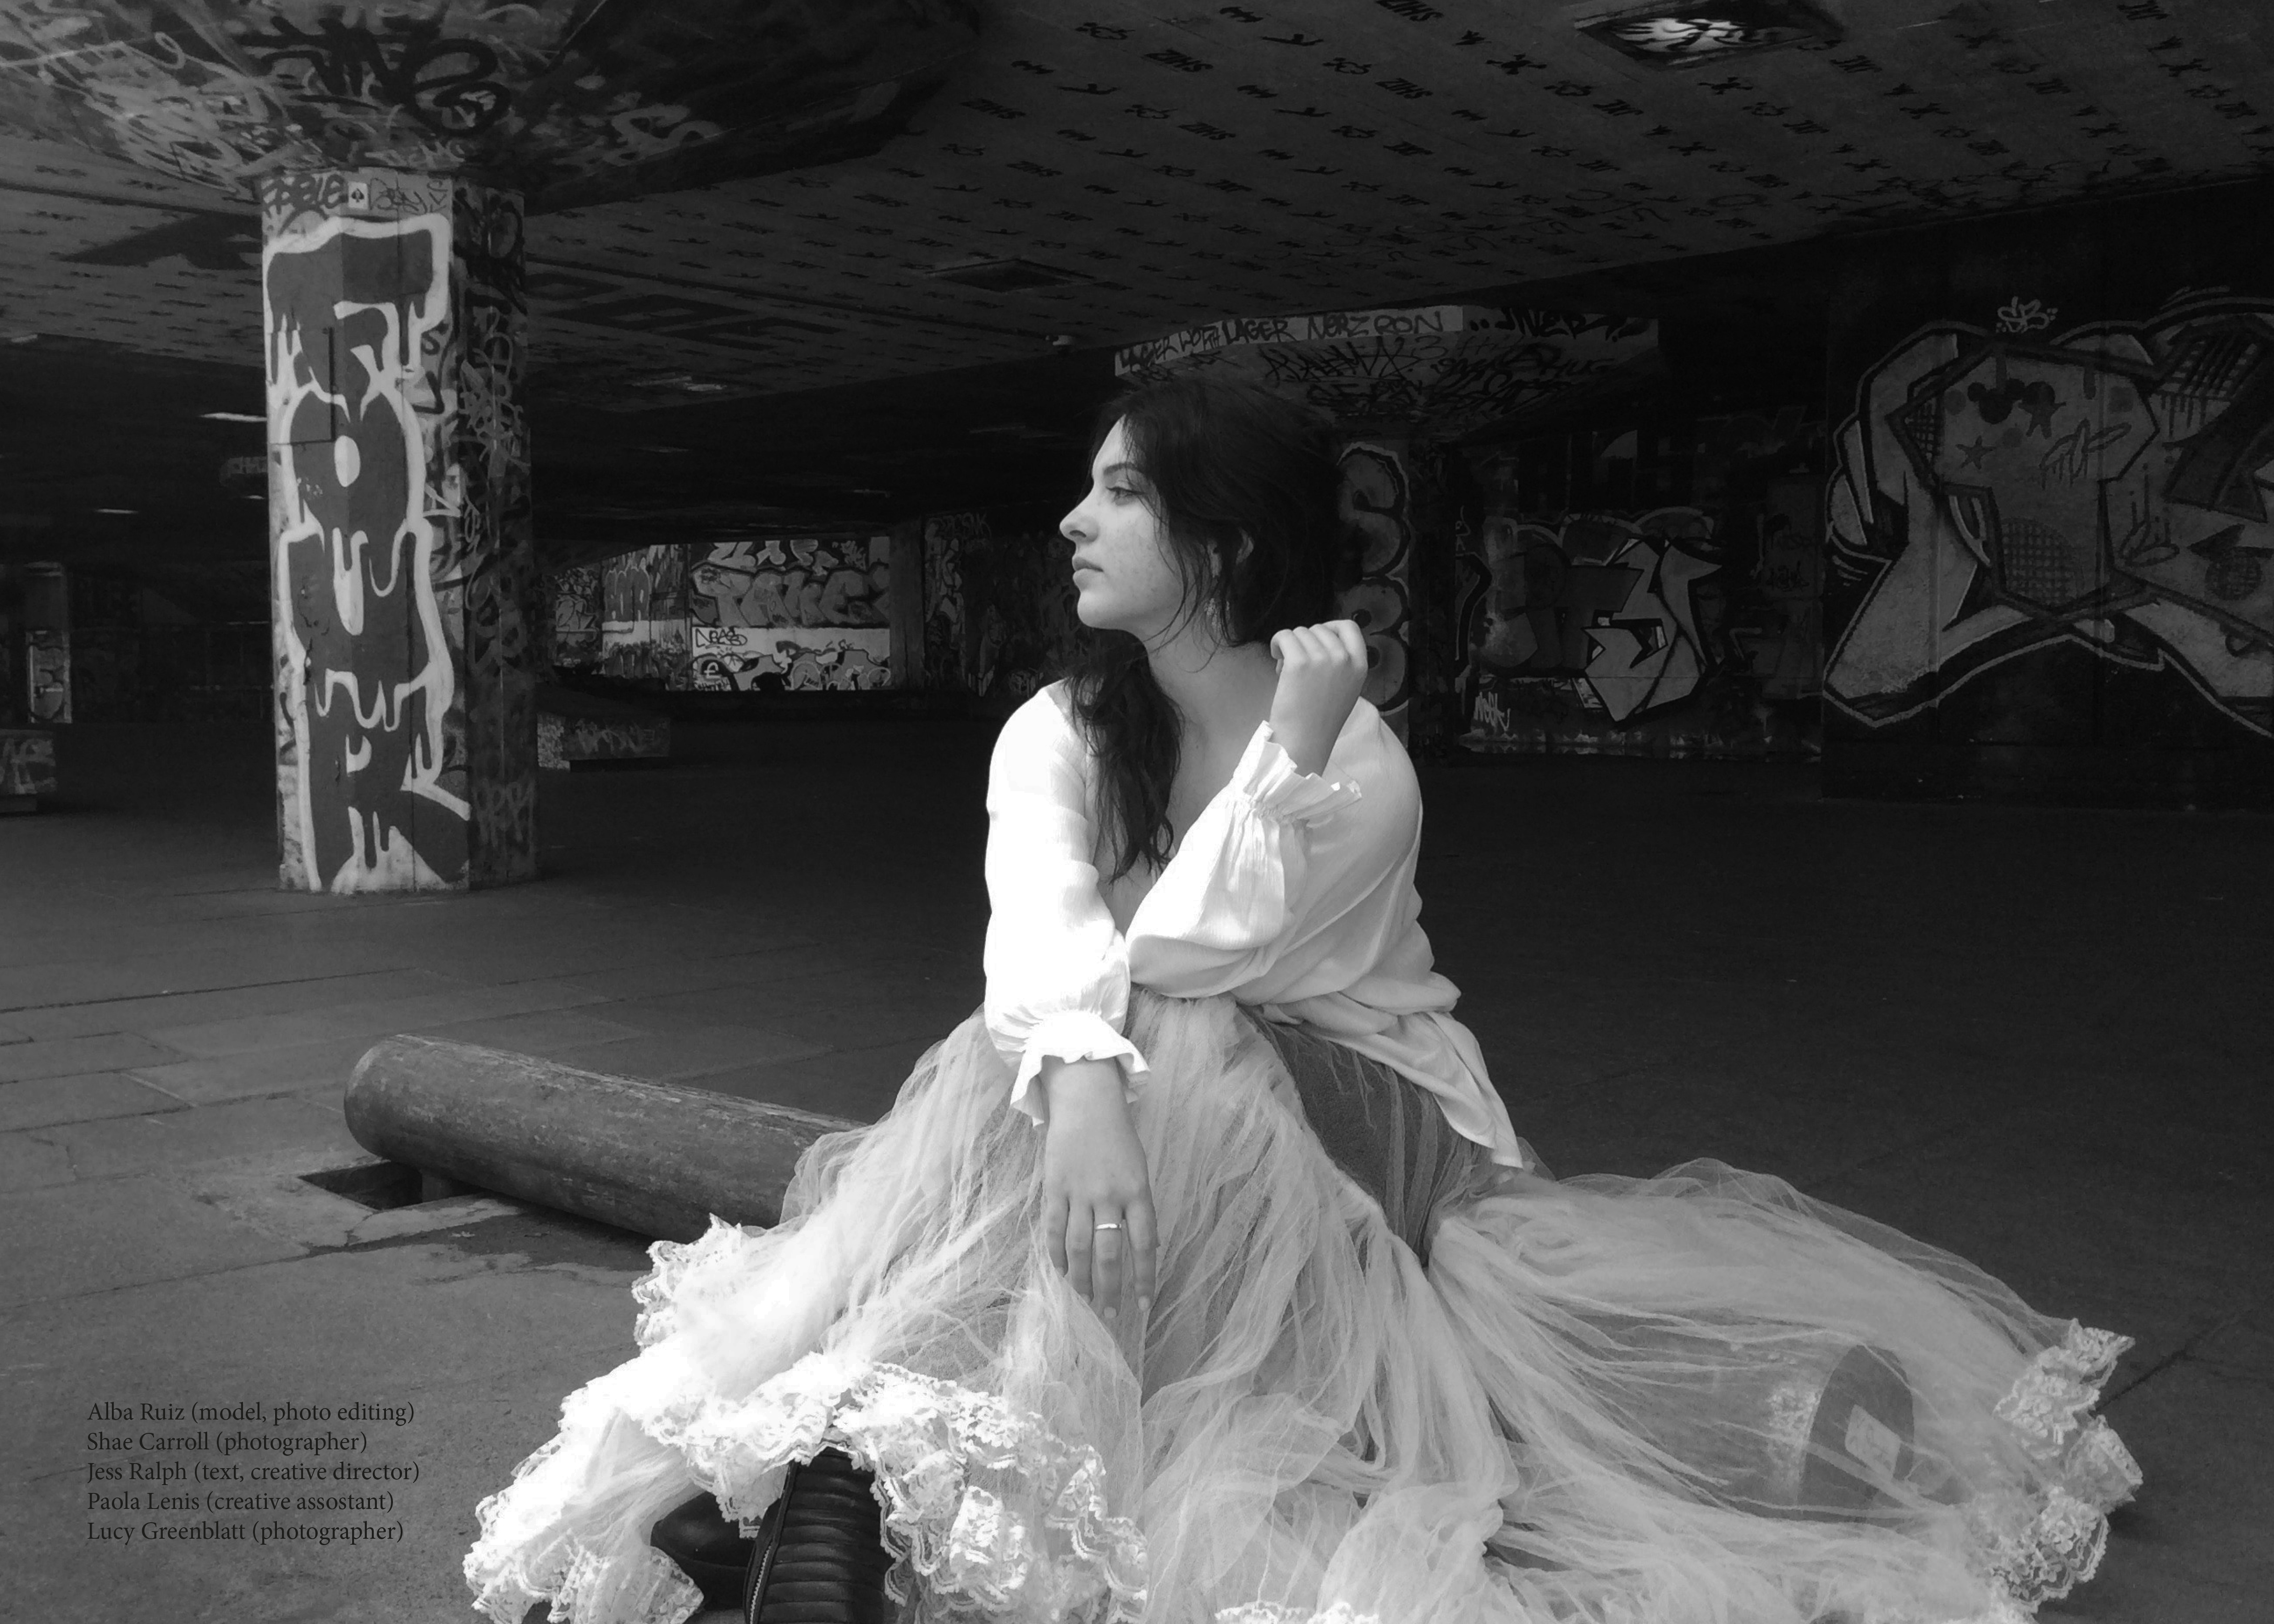 A photograph taken by pupils for their fashion magazine